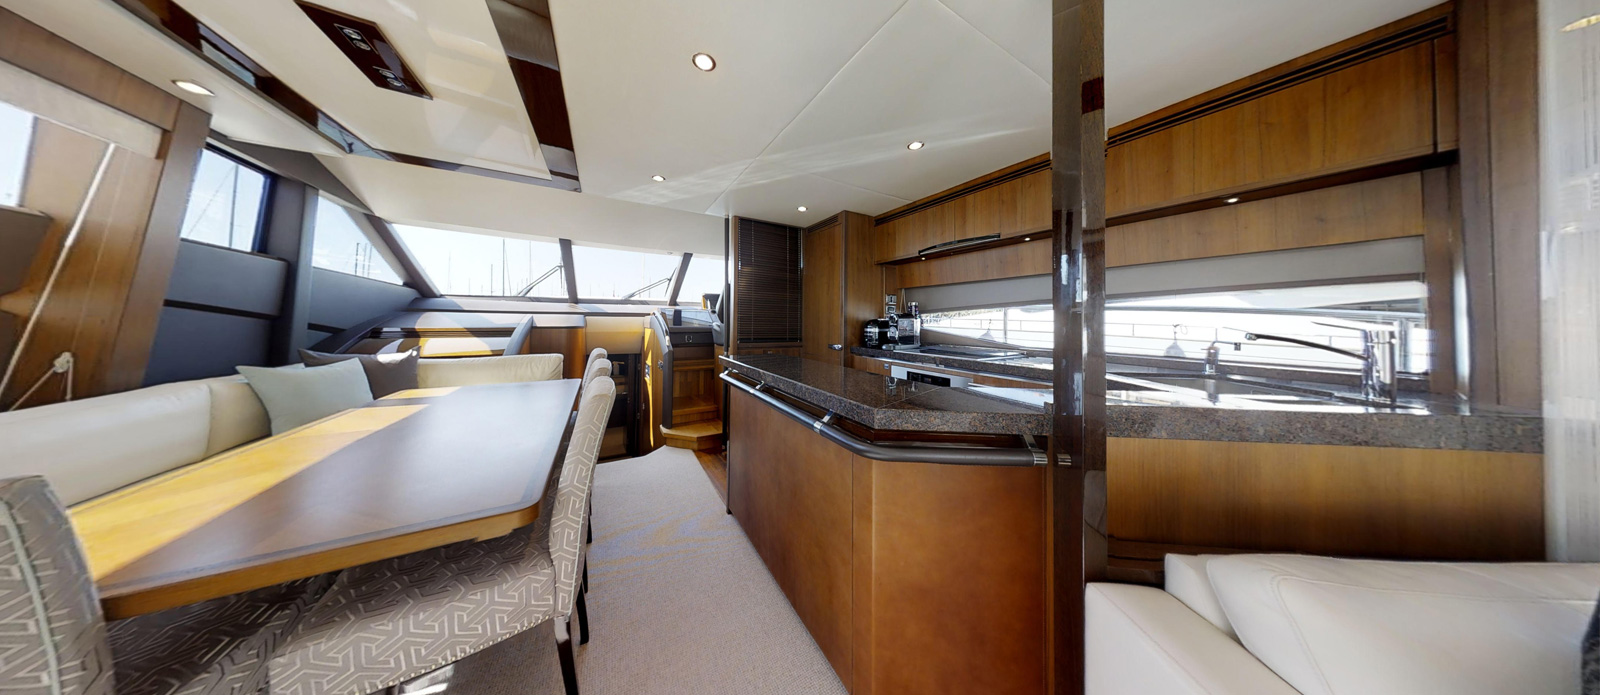 Princess 72 Blonde Moment Galley - For Sale with Bristow-Holmes